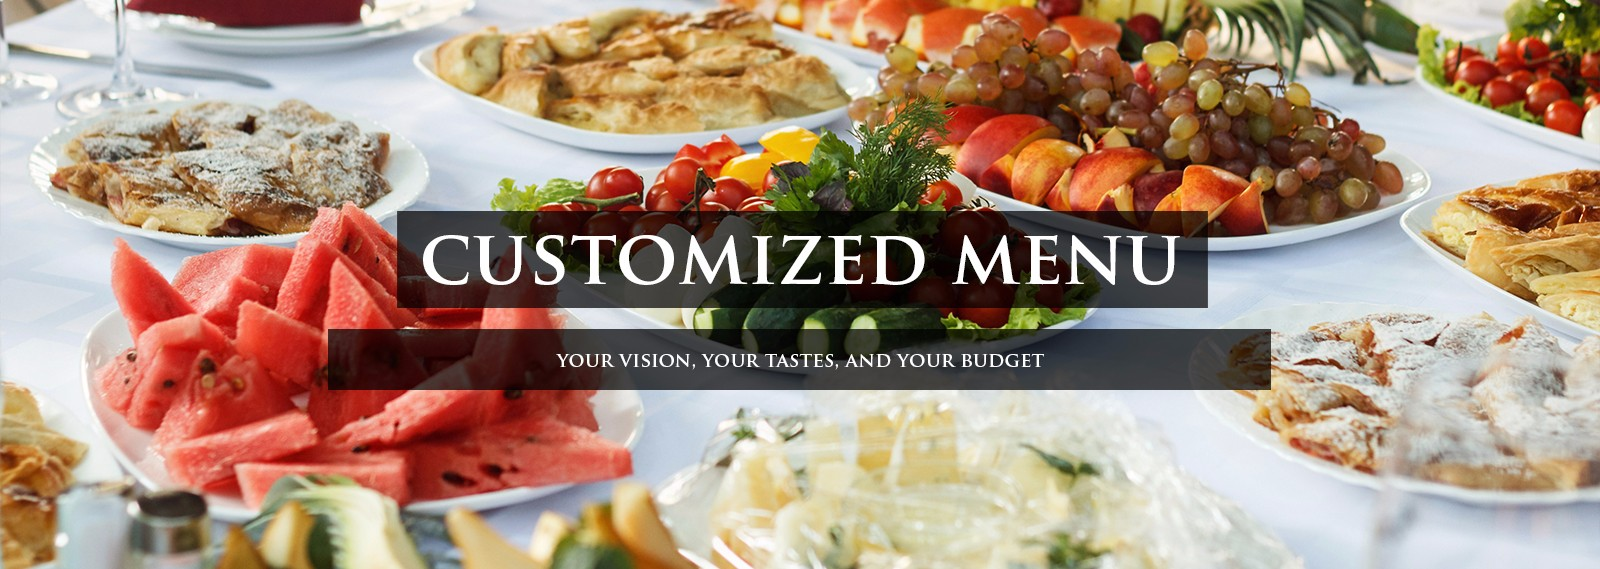 customized menu within your budget